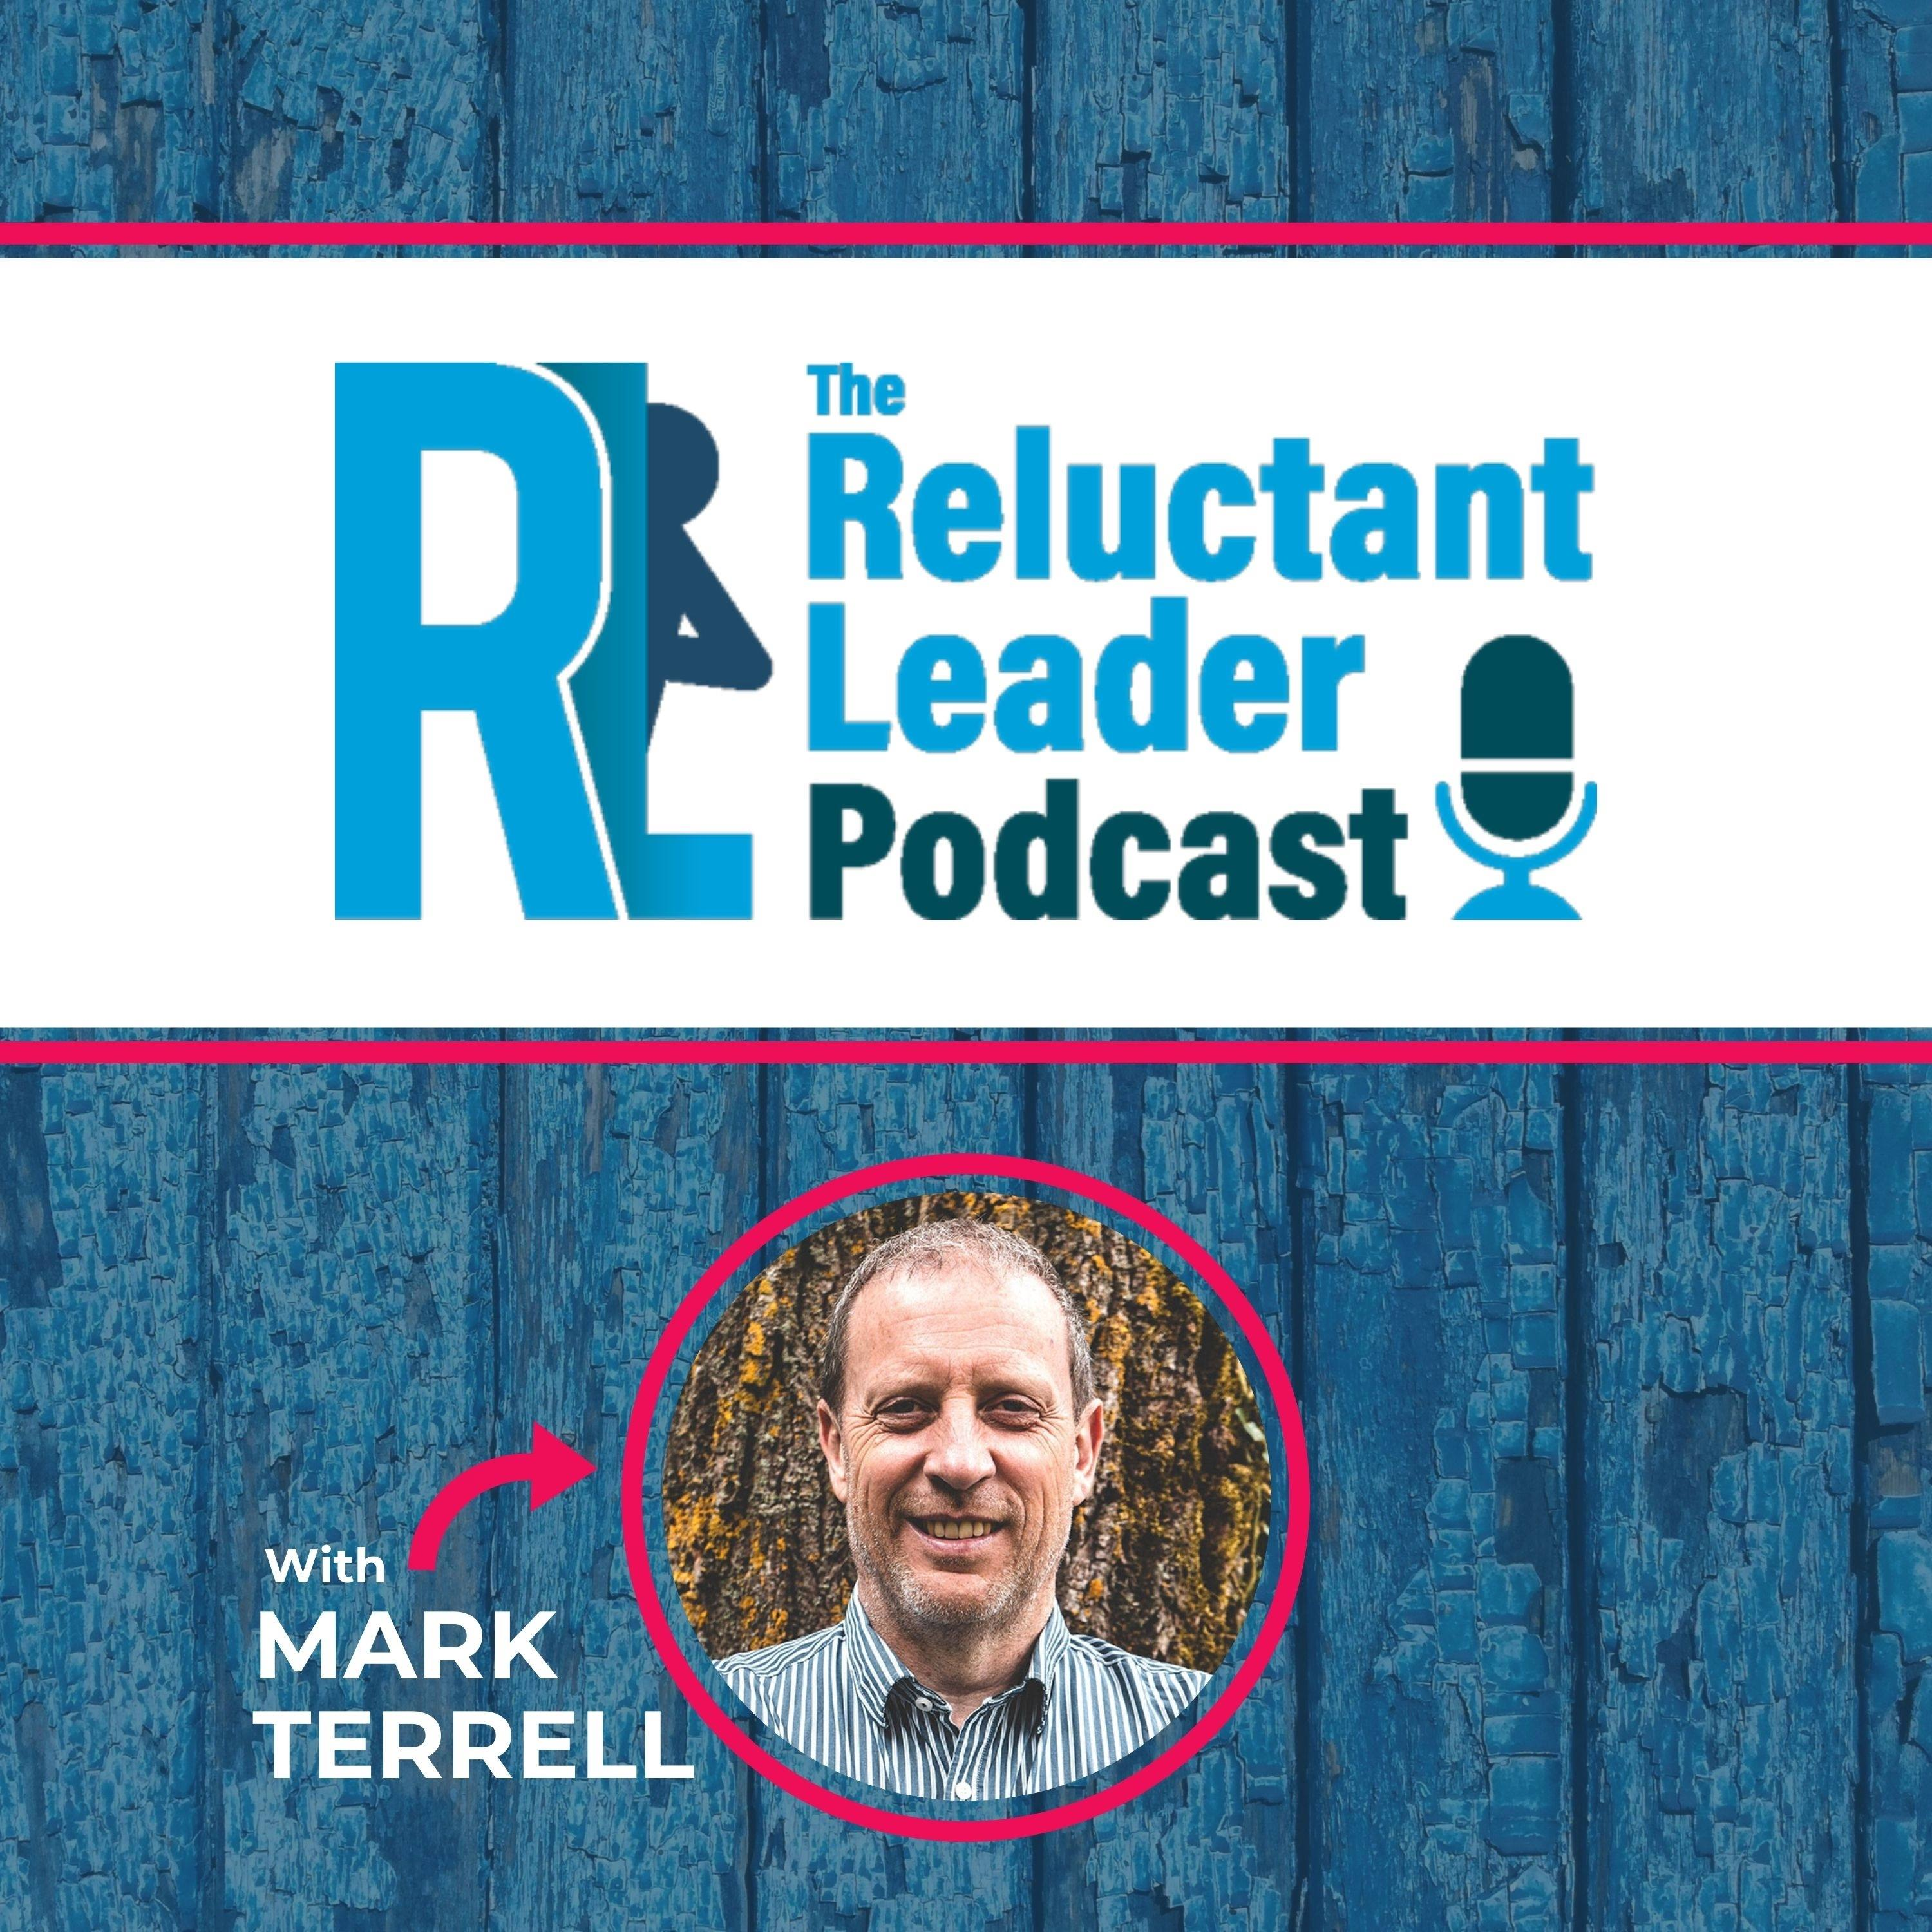 The Reluctant Leader Podcast